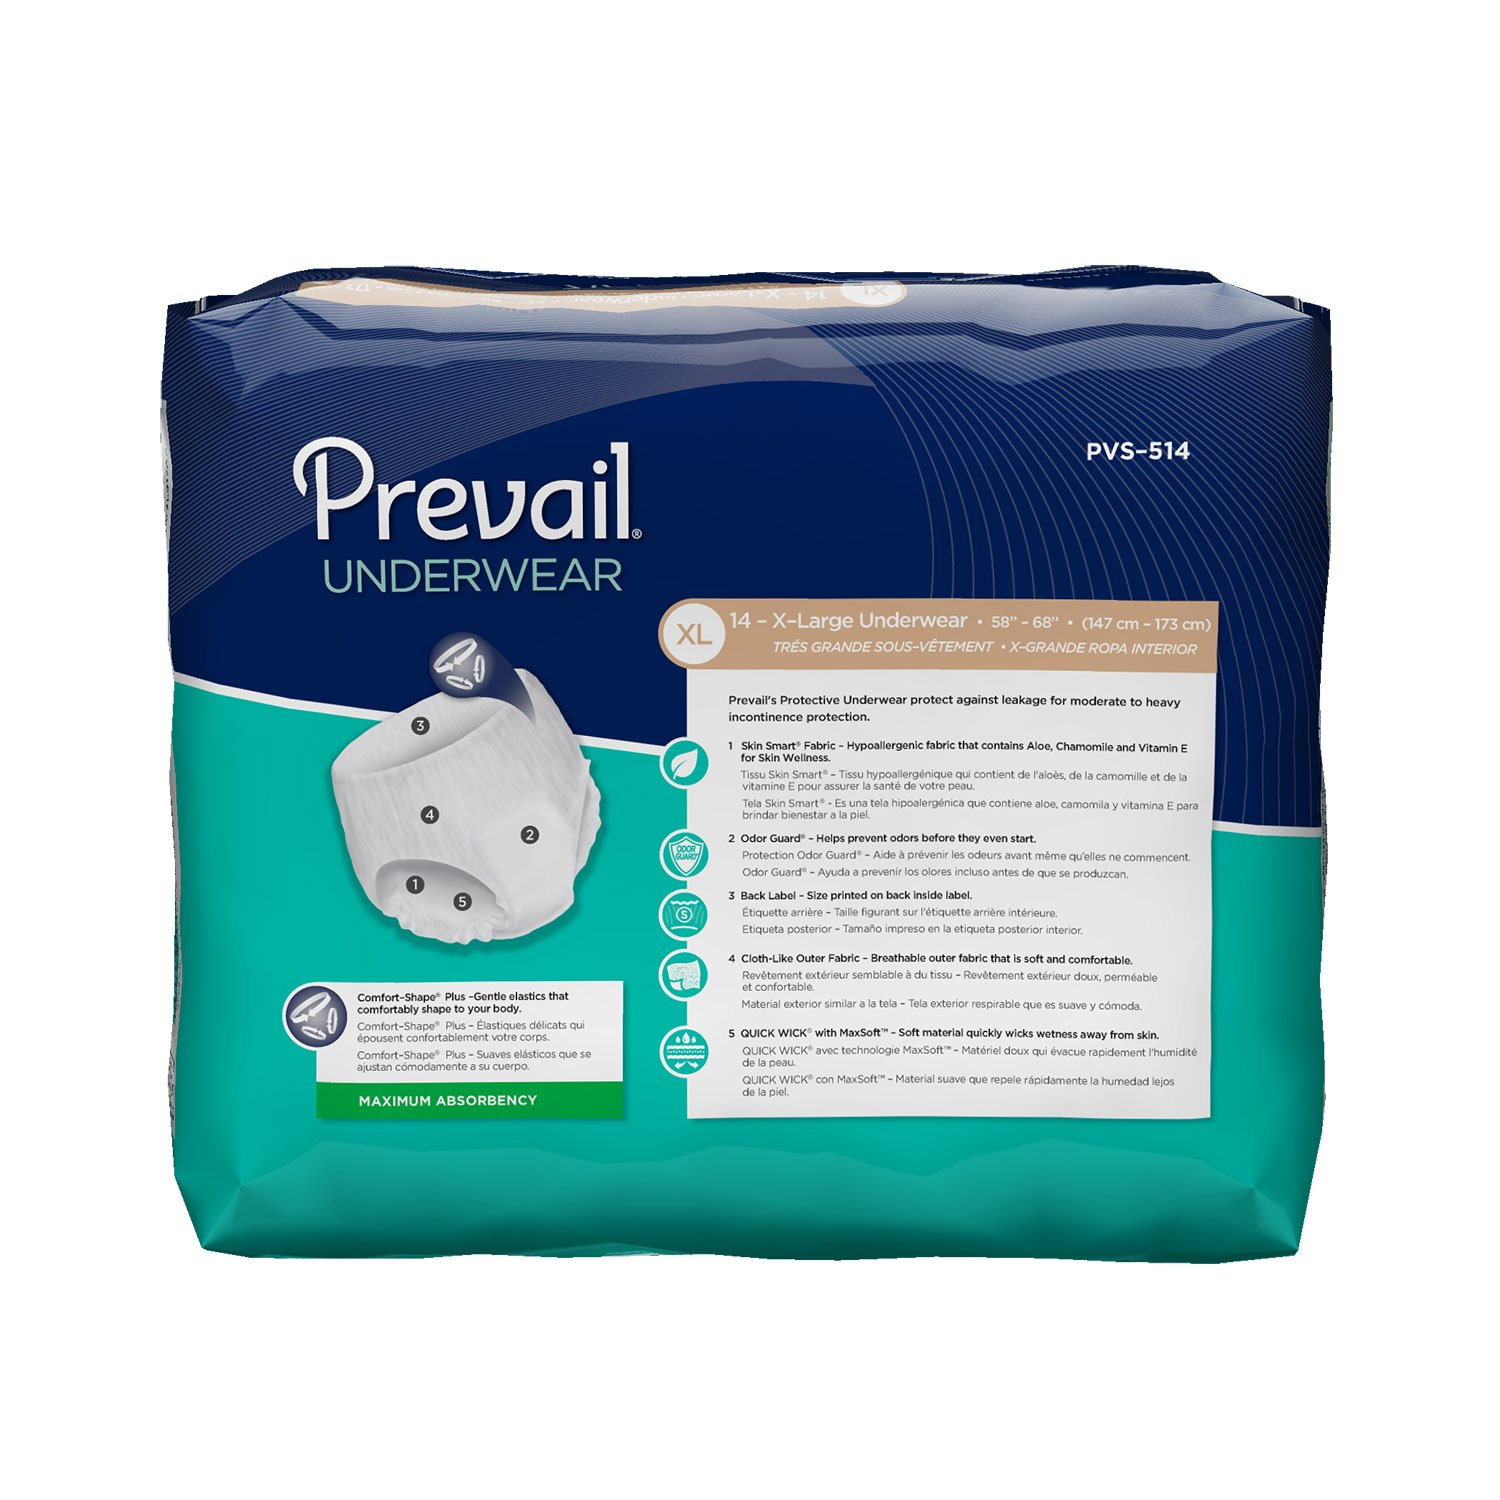 aee5c9456a35d9 Amazon.com: Prevail Maximum Absorbency Incontinence Underwear, X-Large,  14-Count: Health & Personal Care